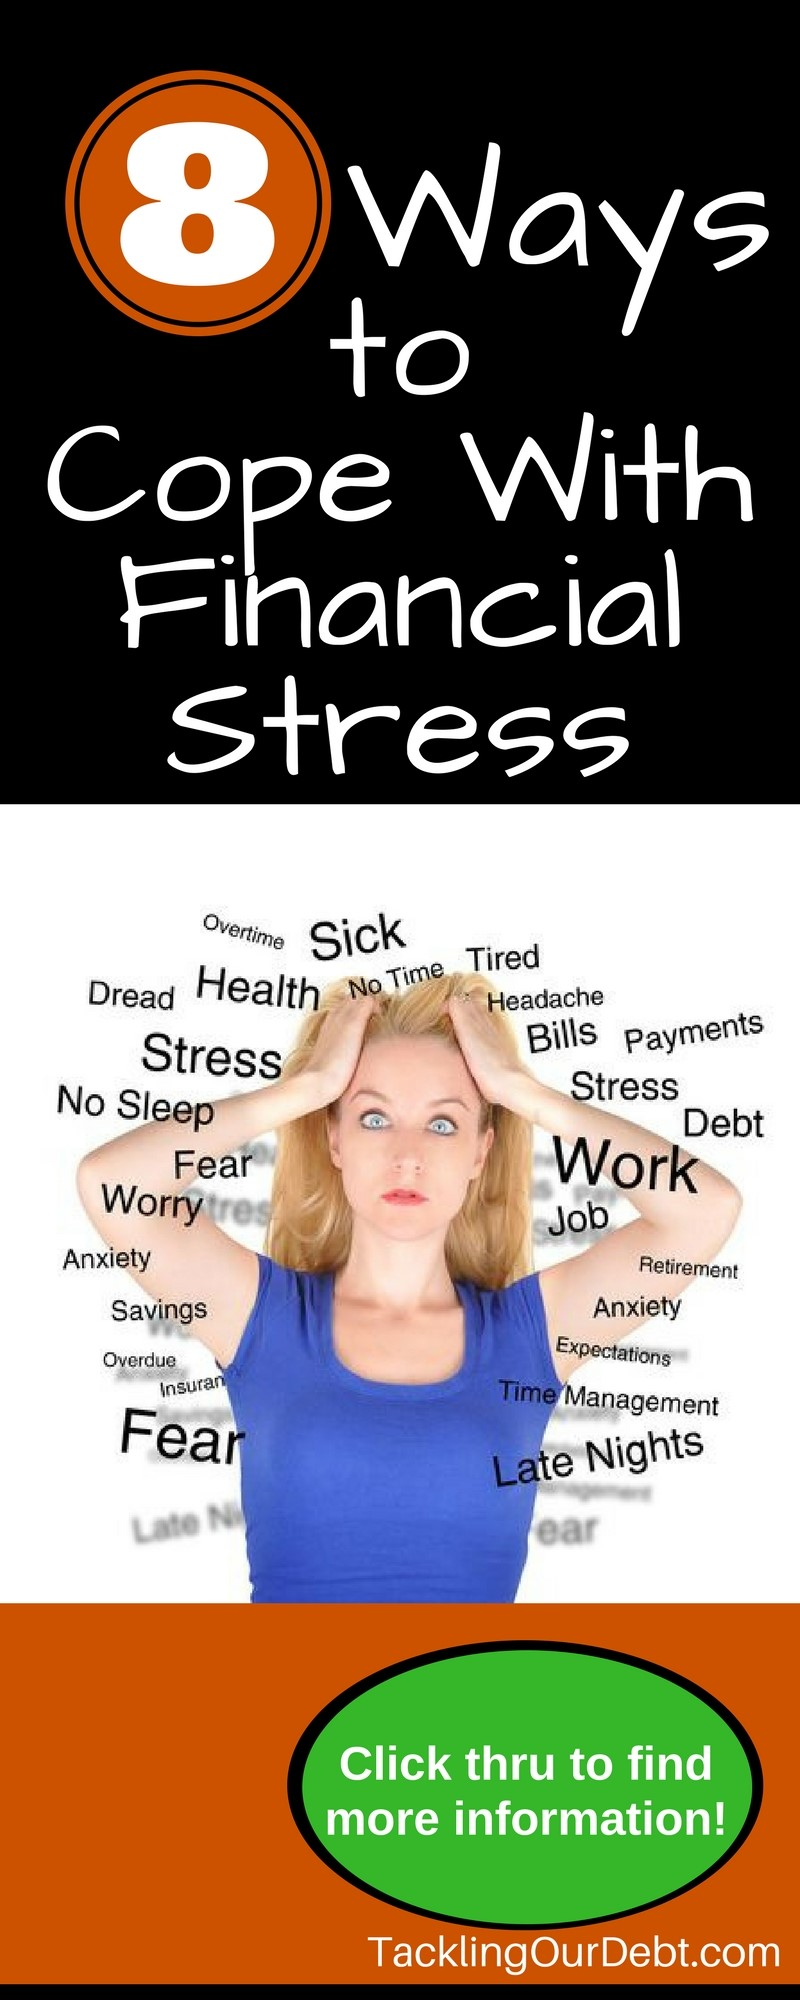 8 Ways to Cope with Financial Stress. Click thru to learn more.